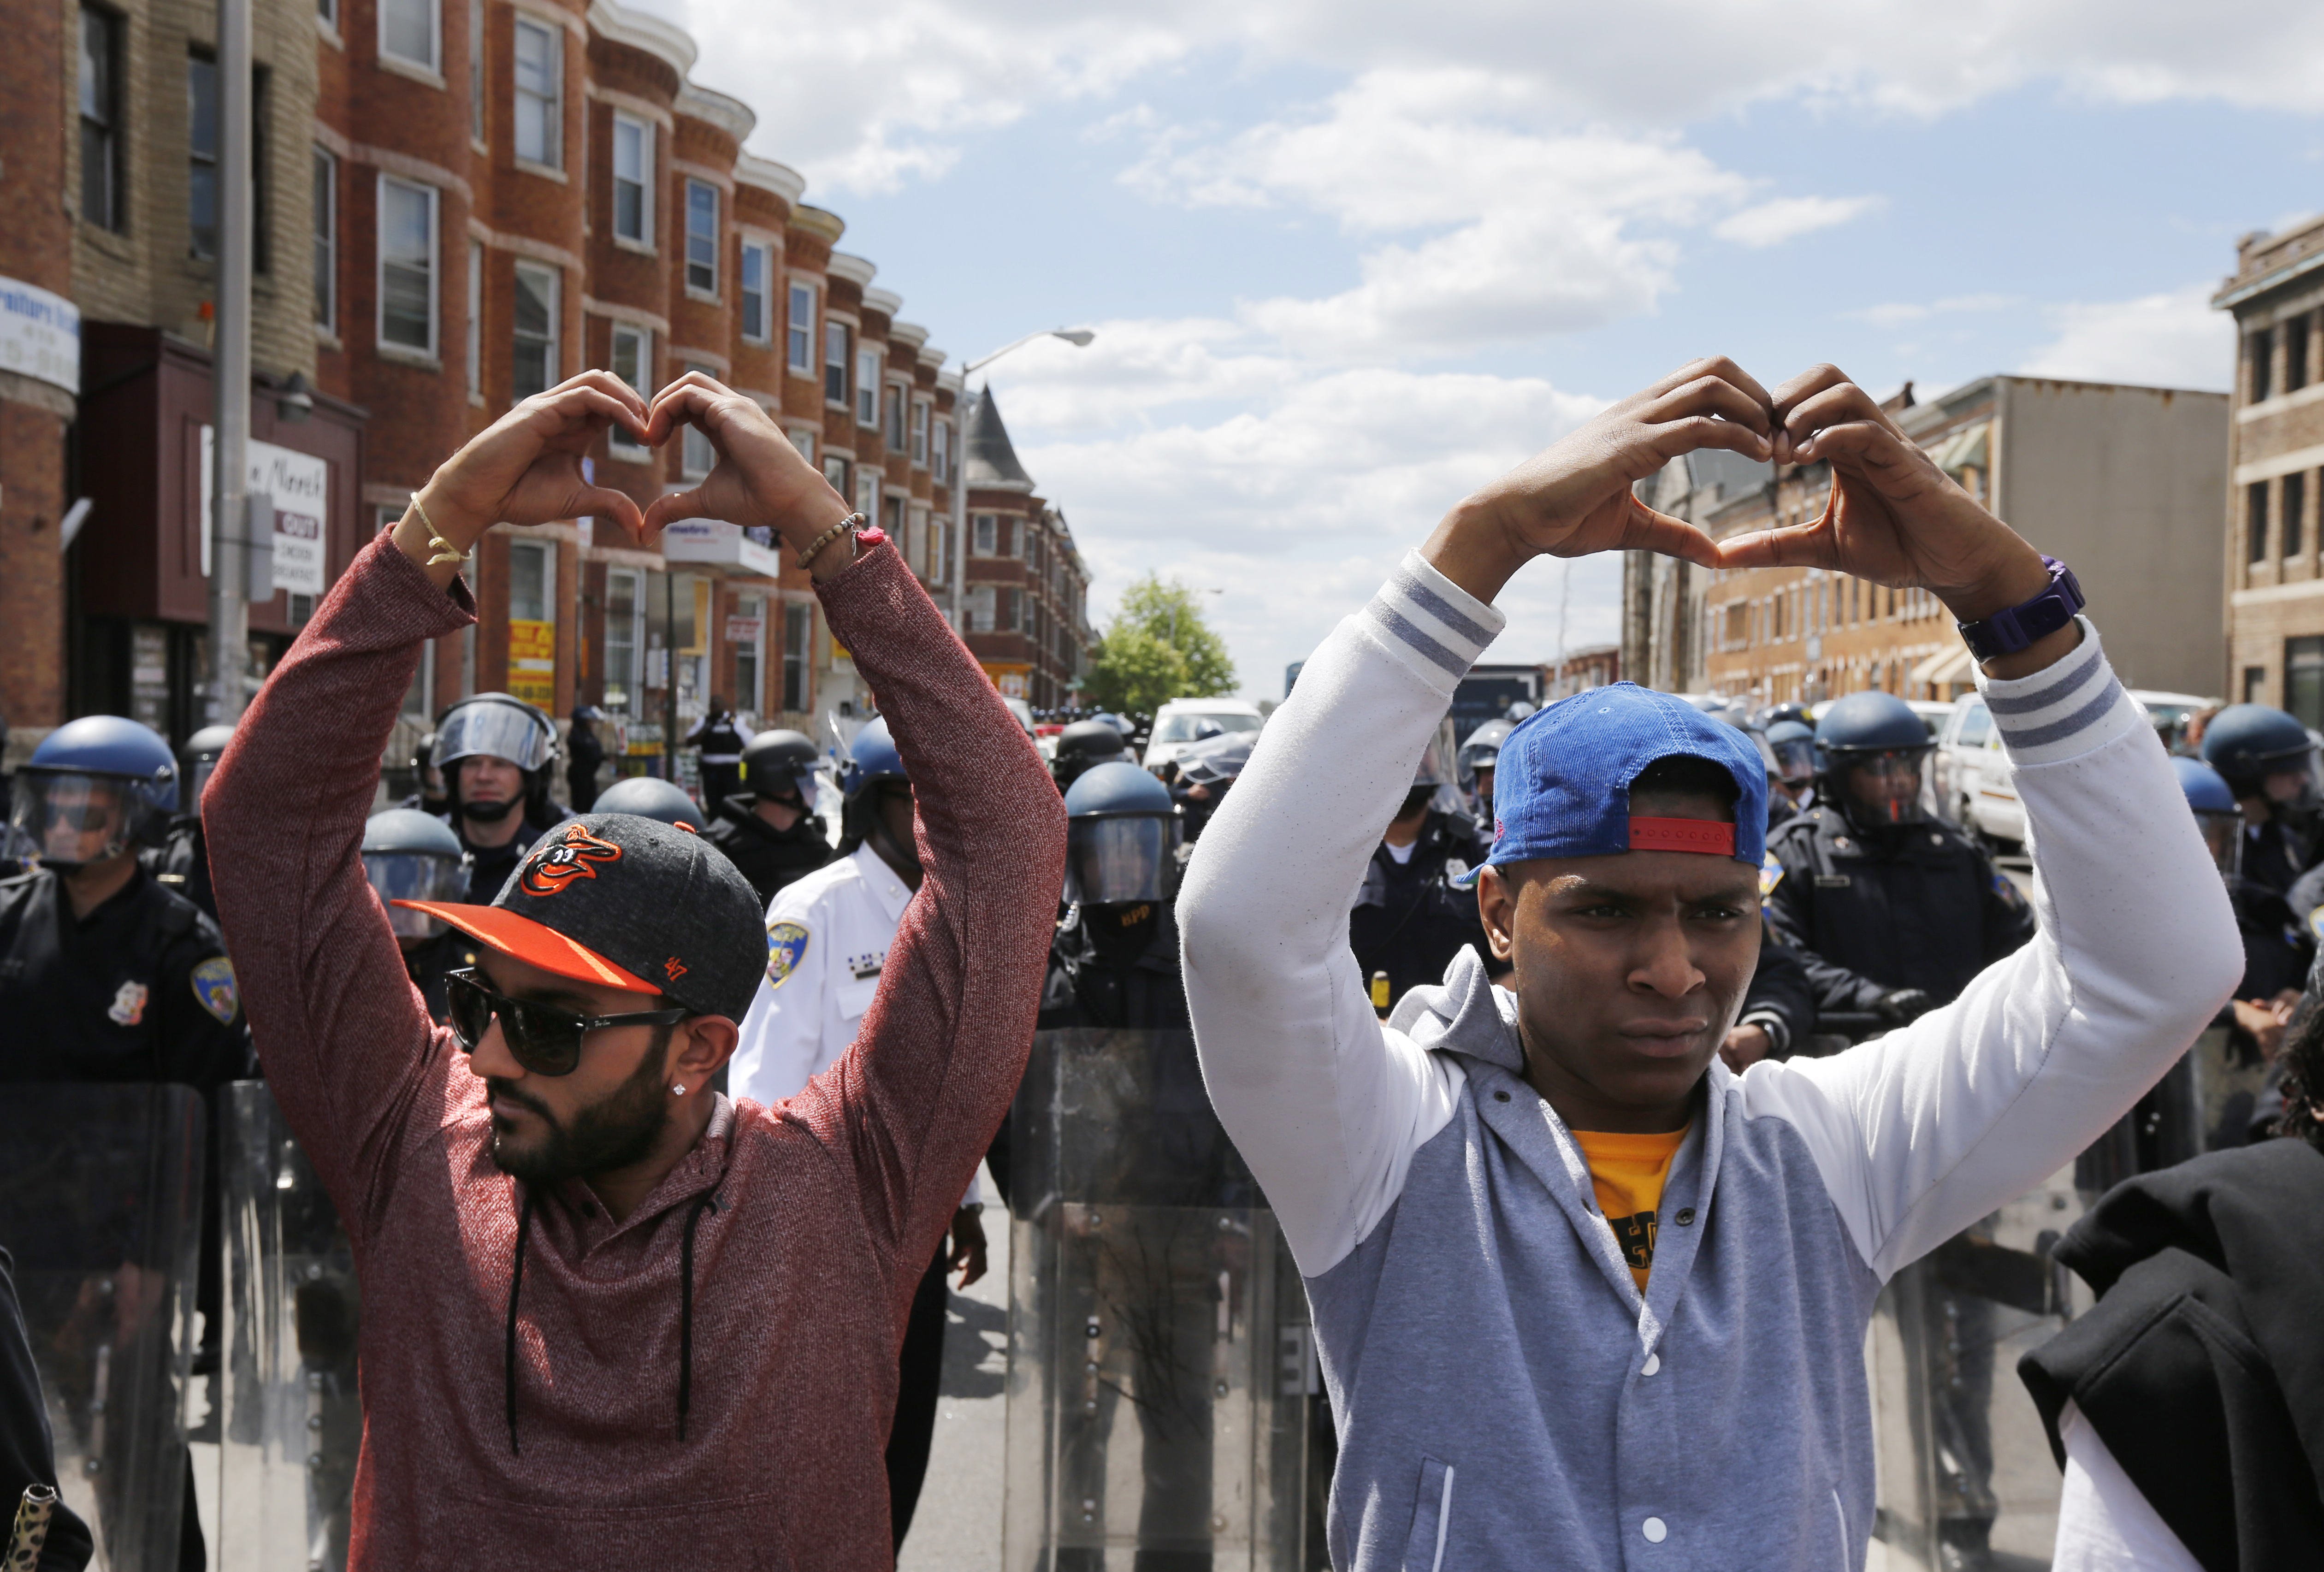 Members of the community make heart gestures with their hands in front of a line of police officers in riot gear, near a recently looted and burned CVS store in Baltimore